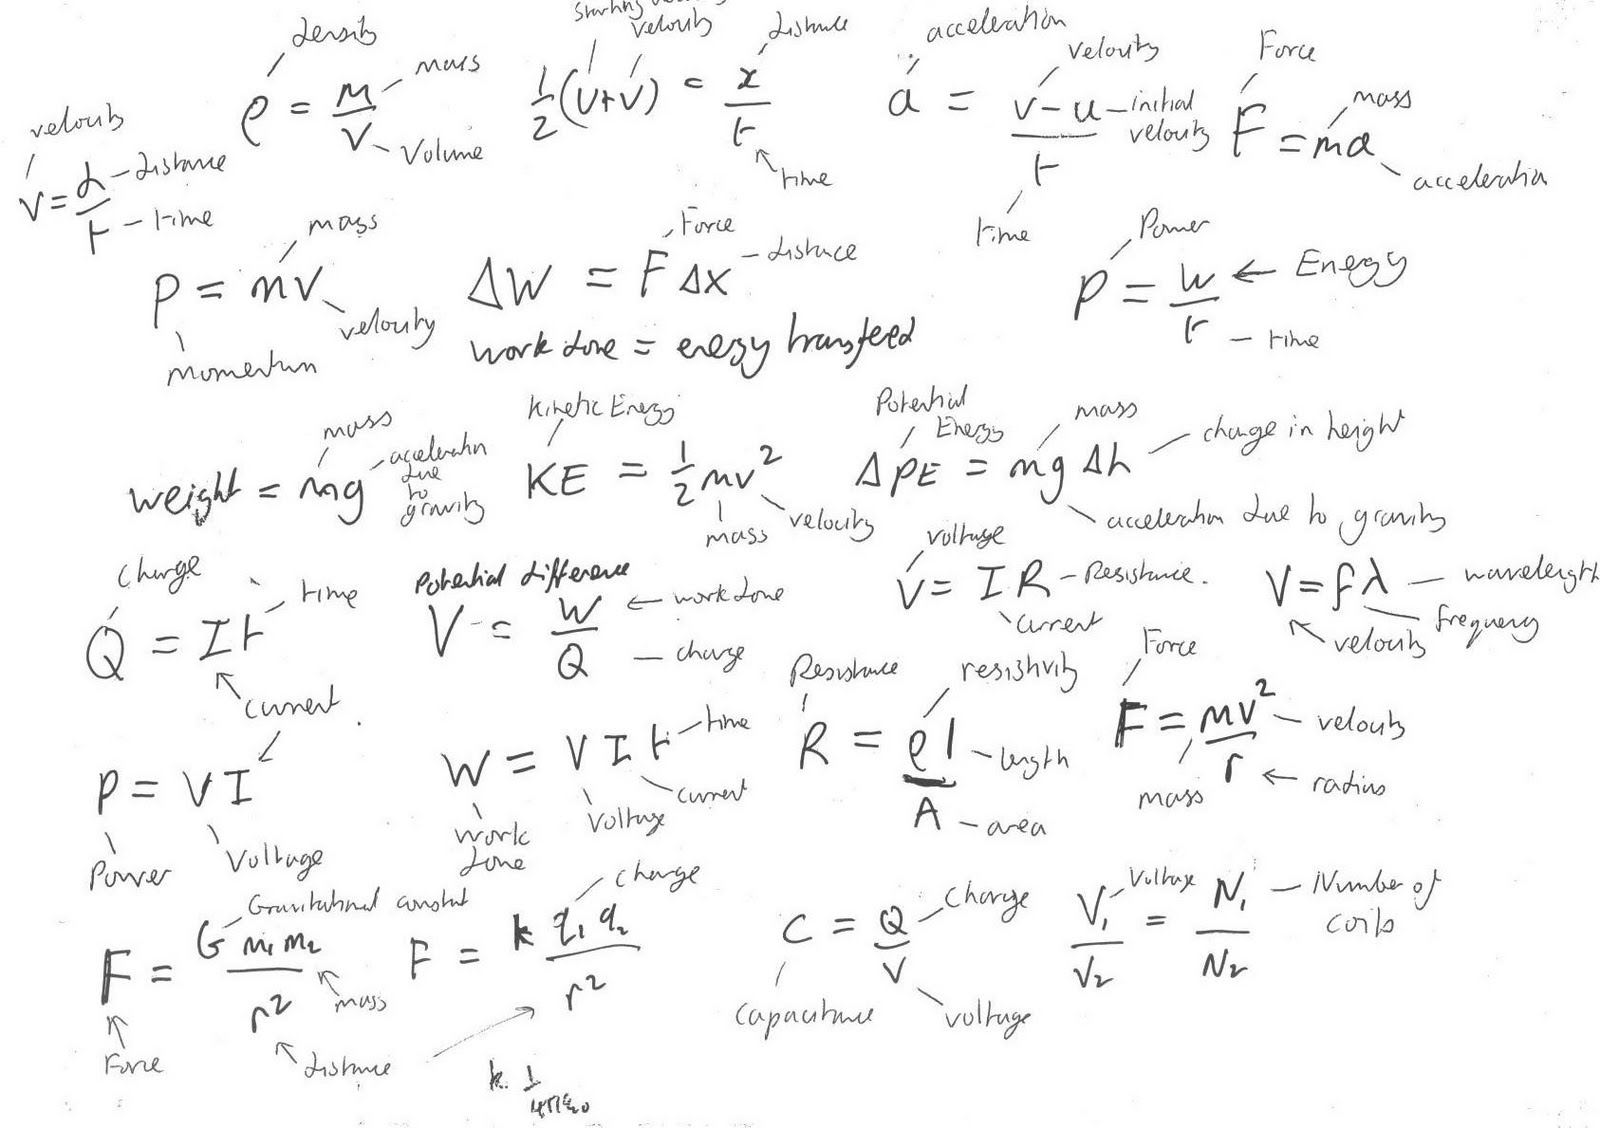 physics formulas Relating physics formulas to things in real life helps you remember and apply these sometimes complex formulas expert: stefan robert, applied math expert.